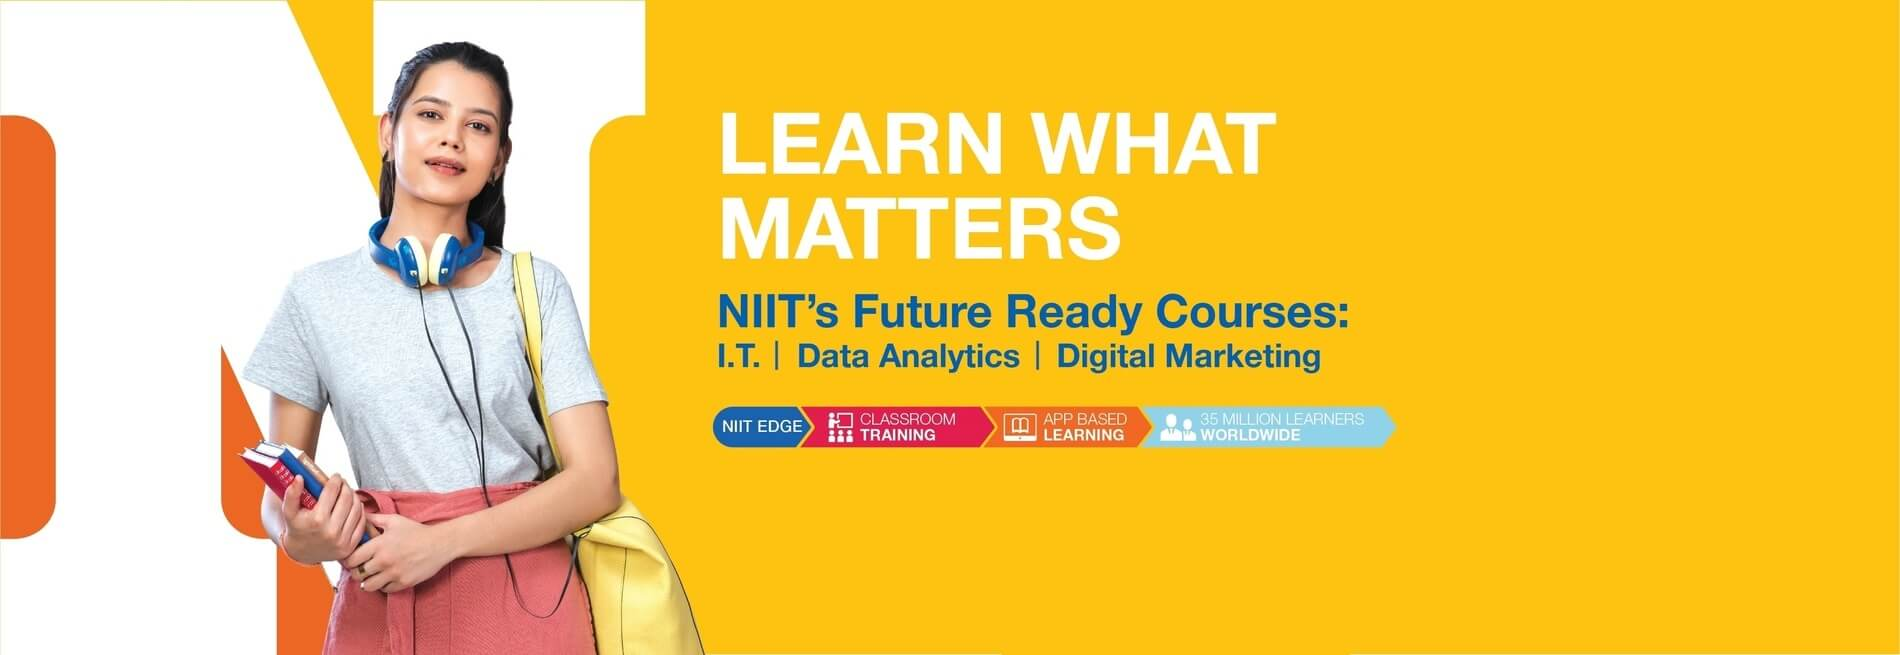 NIIT: Leading Corporate Training Company in India | IT